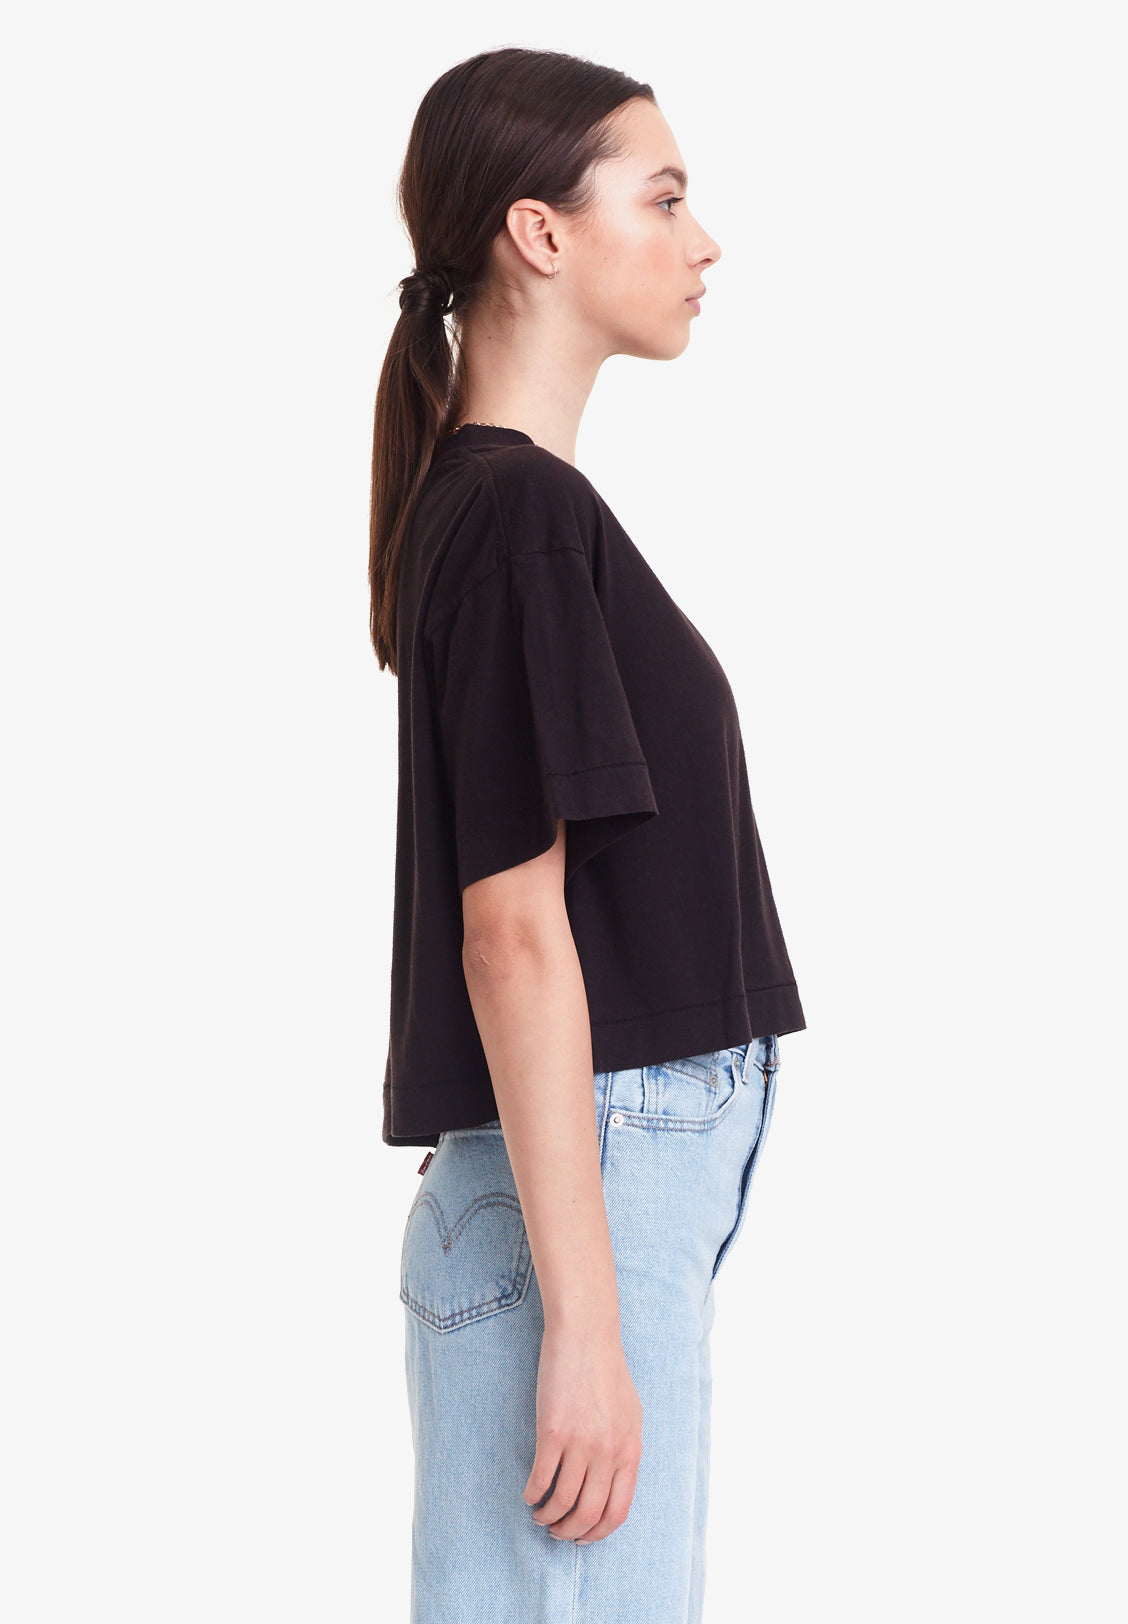 WOMEN'S CROPPED BOY TEE - ORGANIC COTTON / HEMP, BLACK